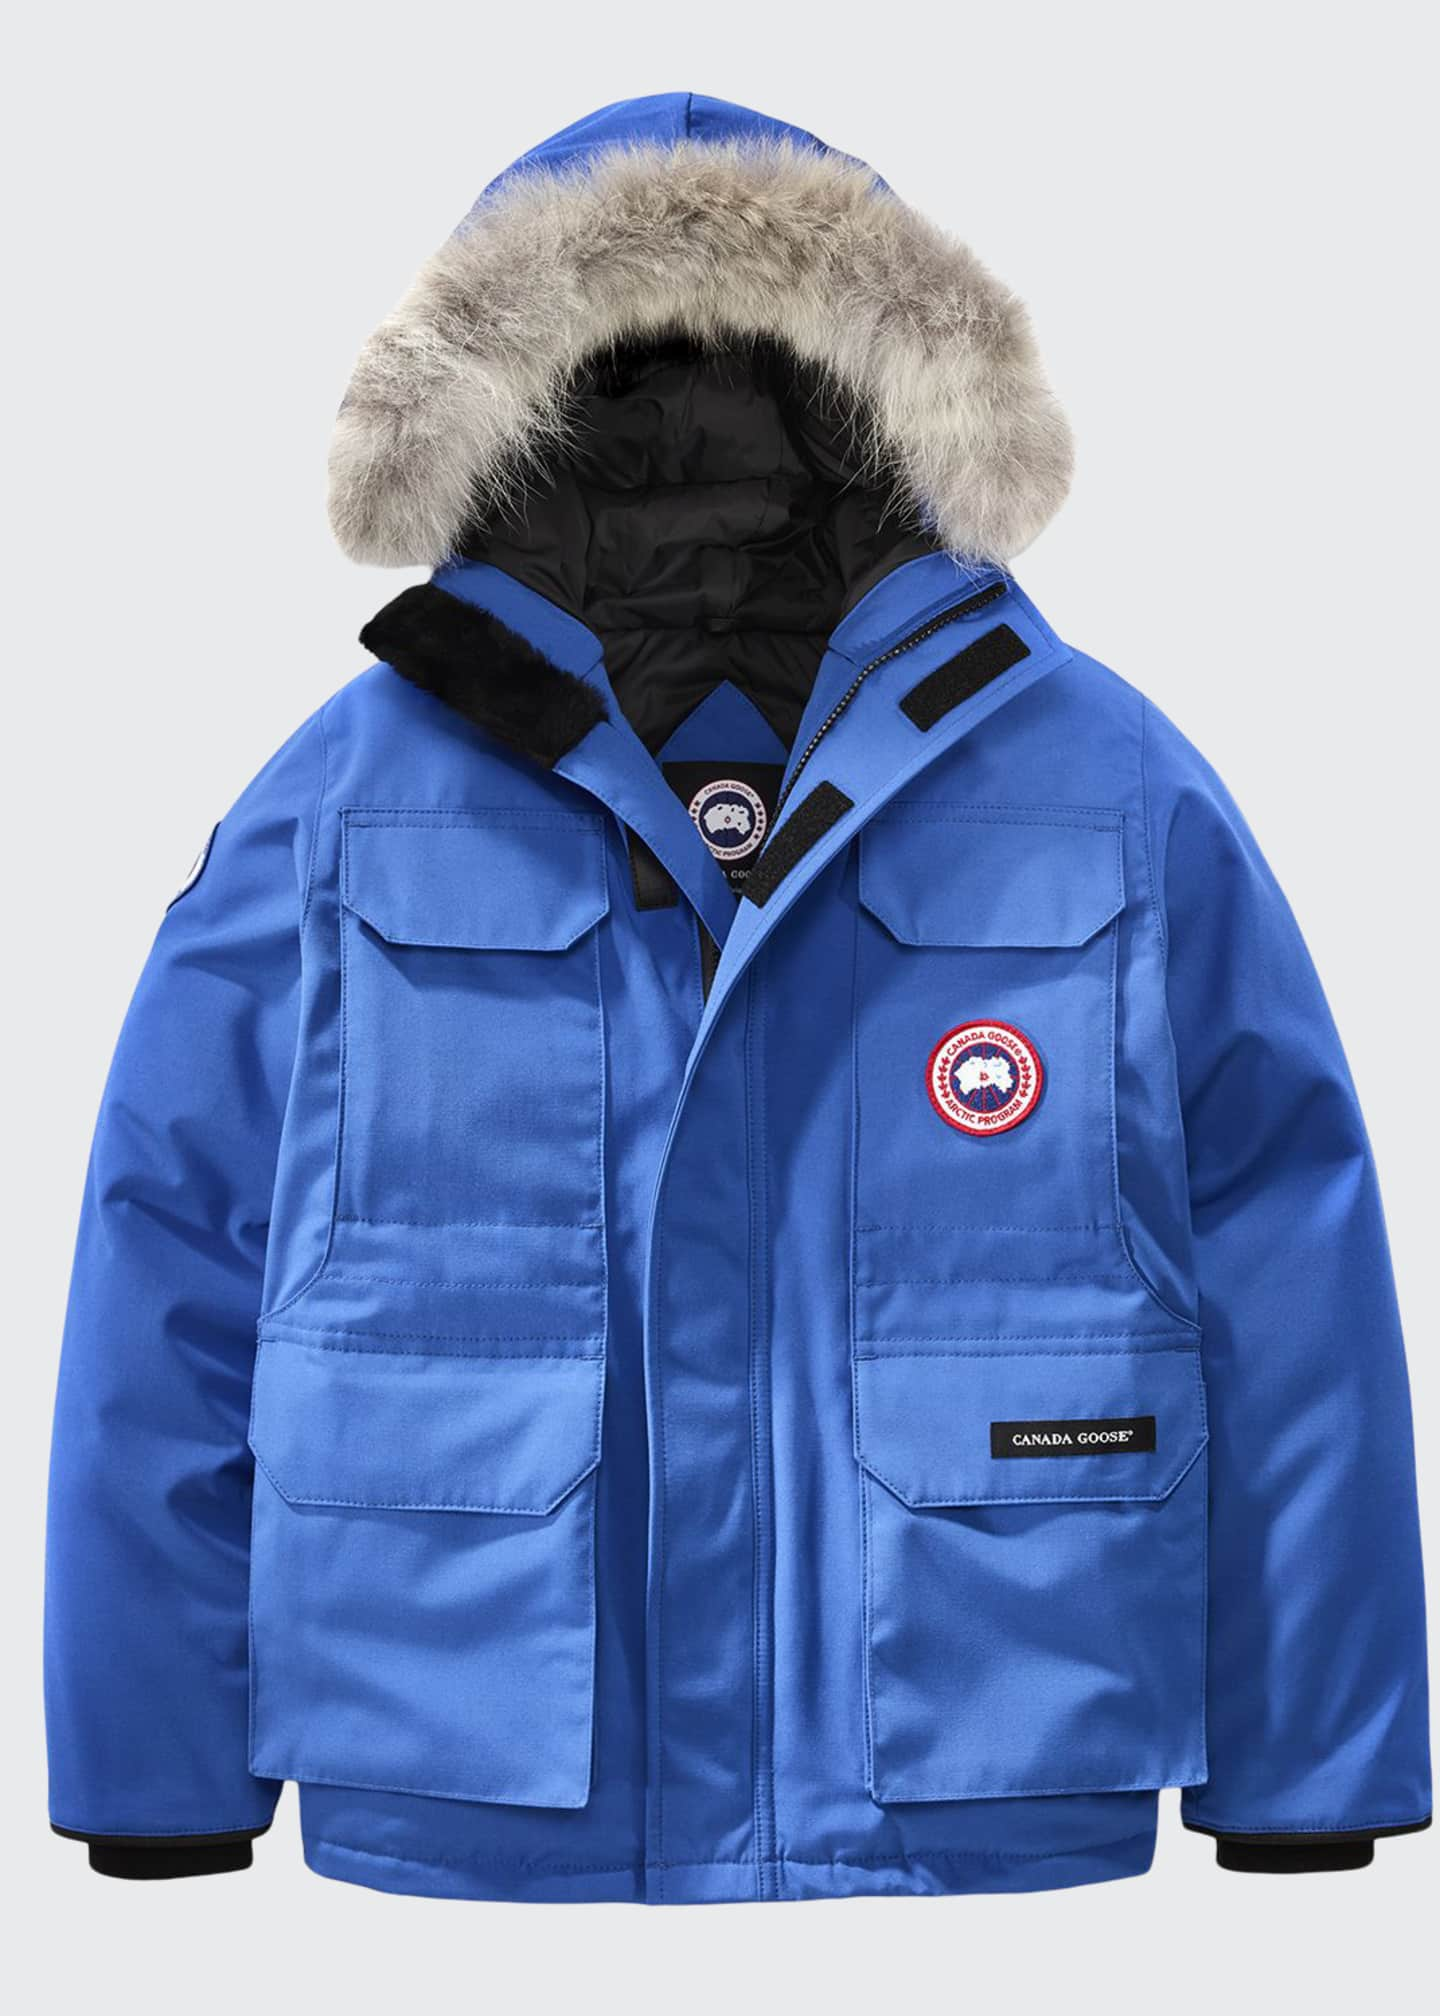 Canada Goose PBI Expedition Hooded Parka, Royal Blue,